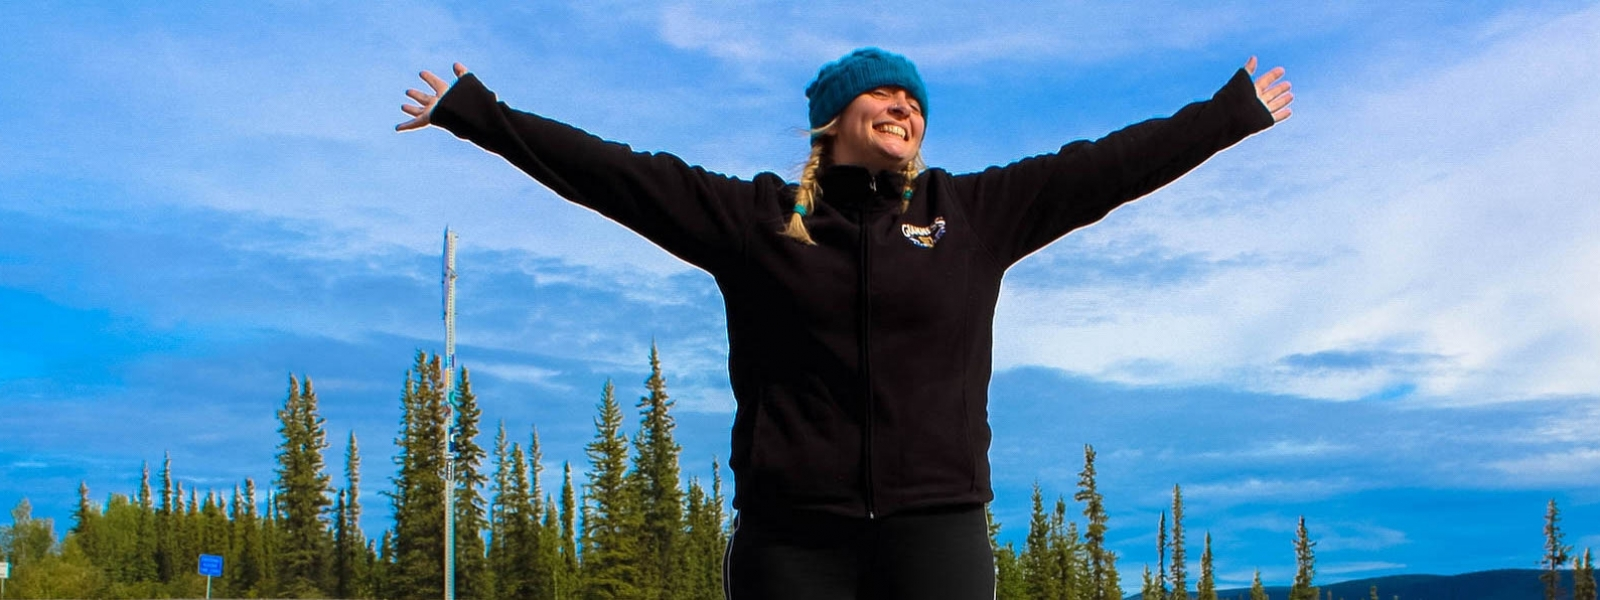 Blogger at kooky traveller, Kirsten Thompson in Alaska